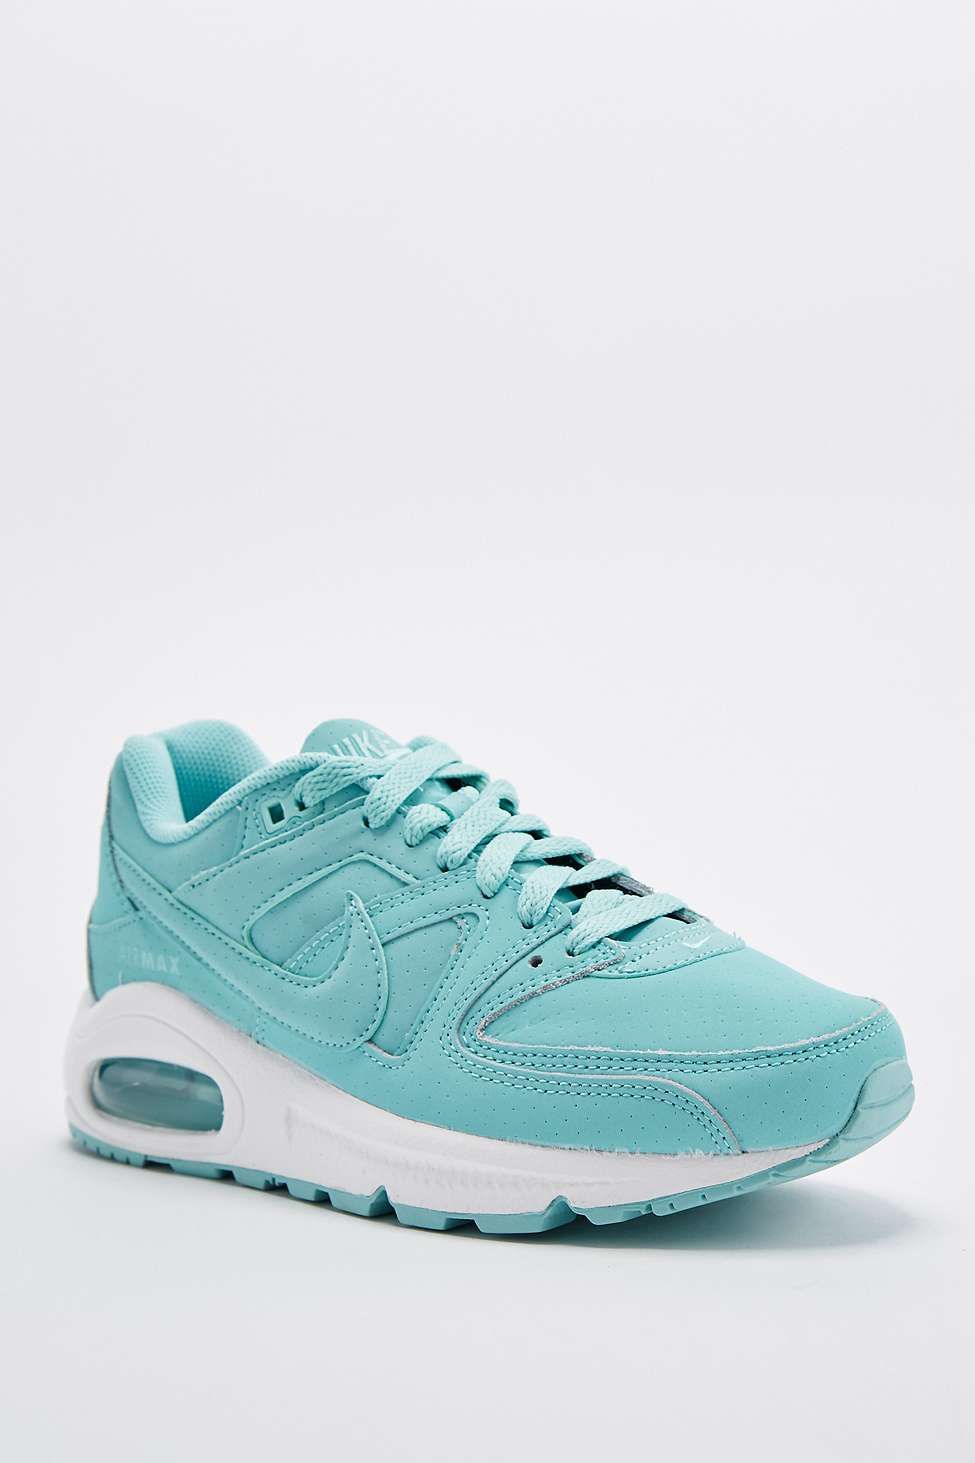 36cb309cc8d83 Nike Air Max Command Premium Trainers in Mint Green